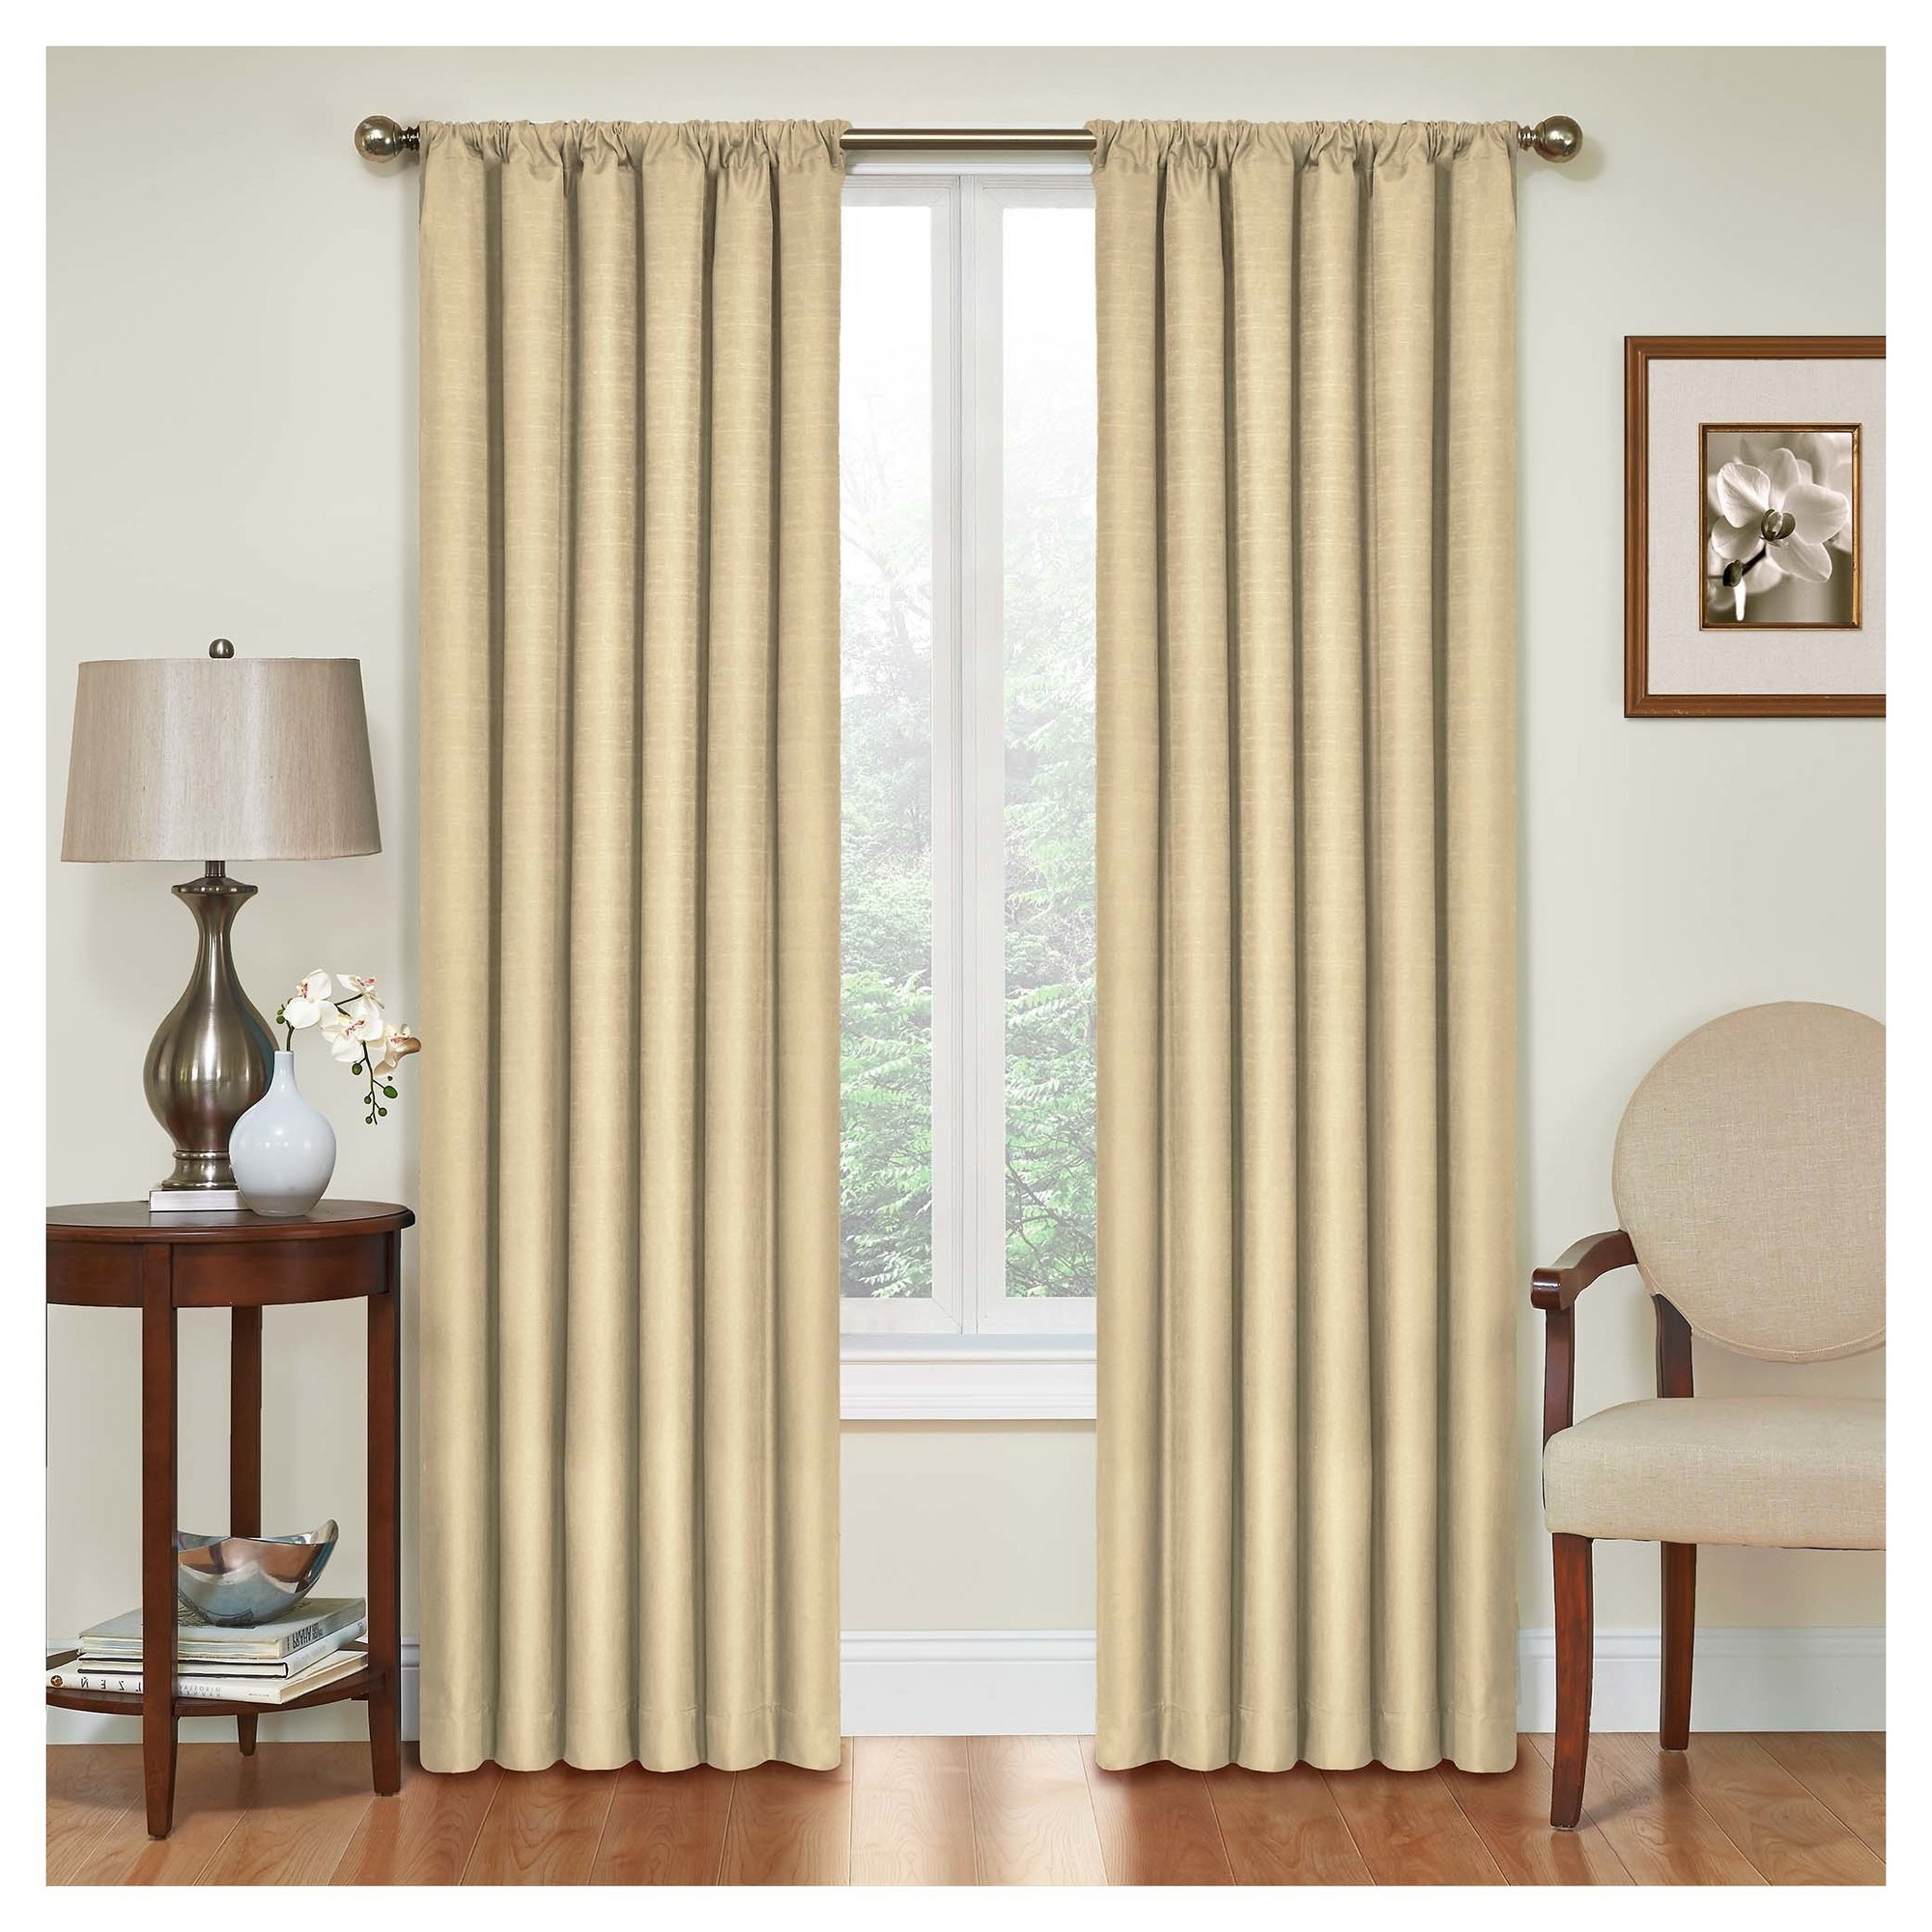 "Kendall Thermaback Blackout Curtain Panel Tan (42""x95 In Well Known Thermaback Blackout Window Curtains (View 13 of 20)"